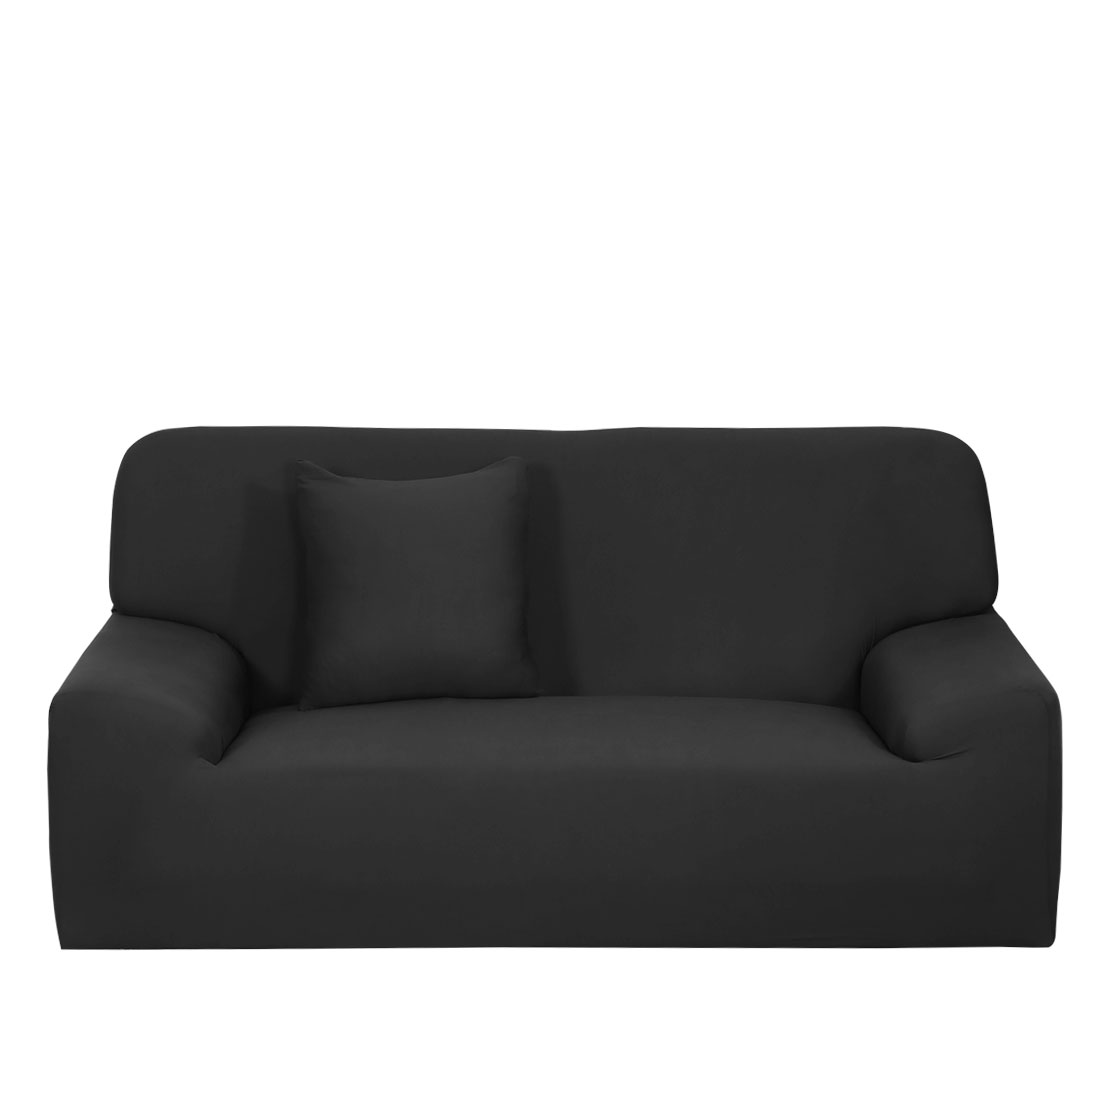 Charmant Stretch Sofa Cover Chair Loveseat Couch Slipcovers Protector Black